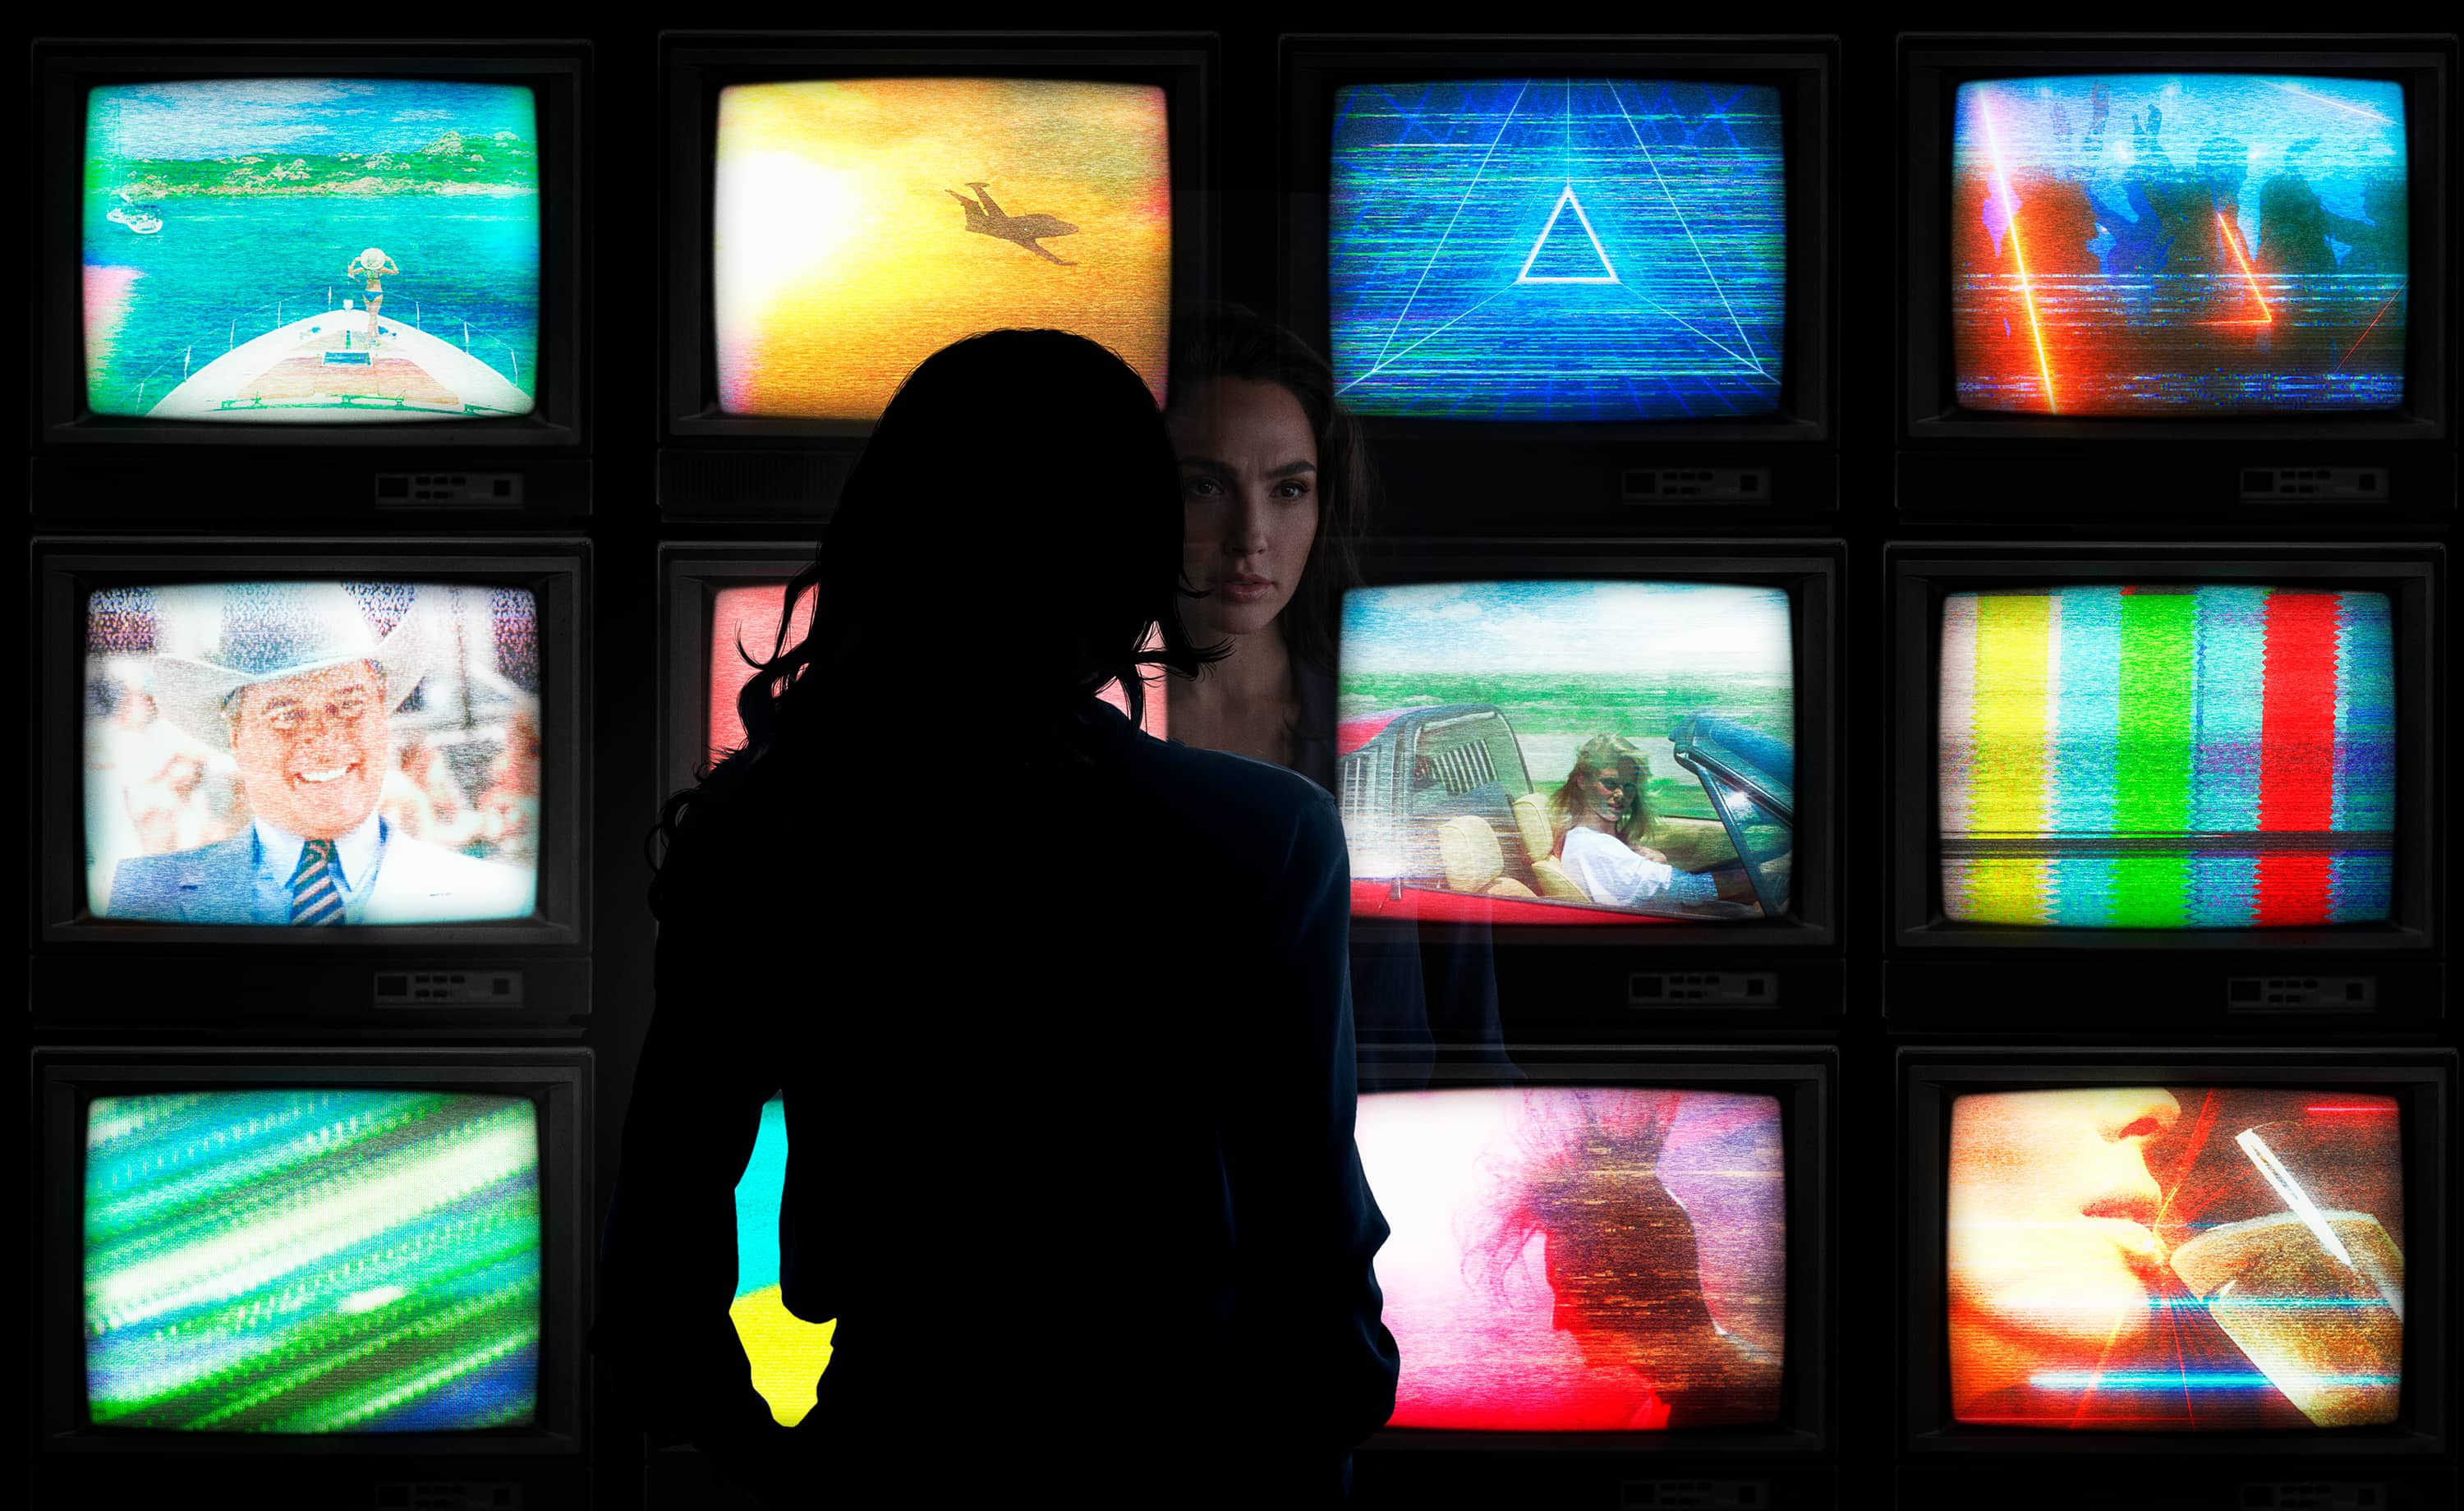 A woman looking at a bank of television monitors (scene from Wonder Woman)